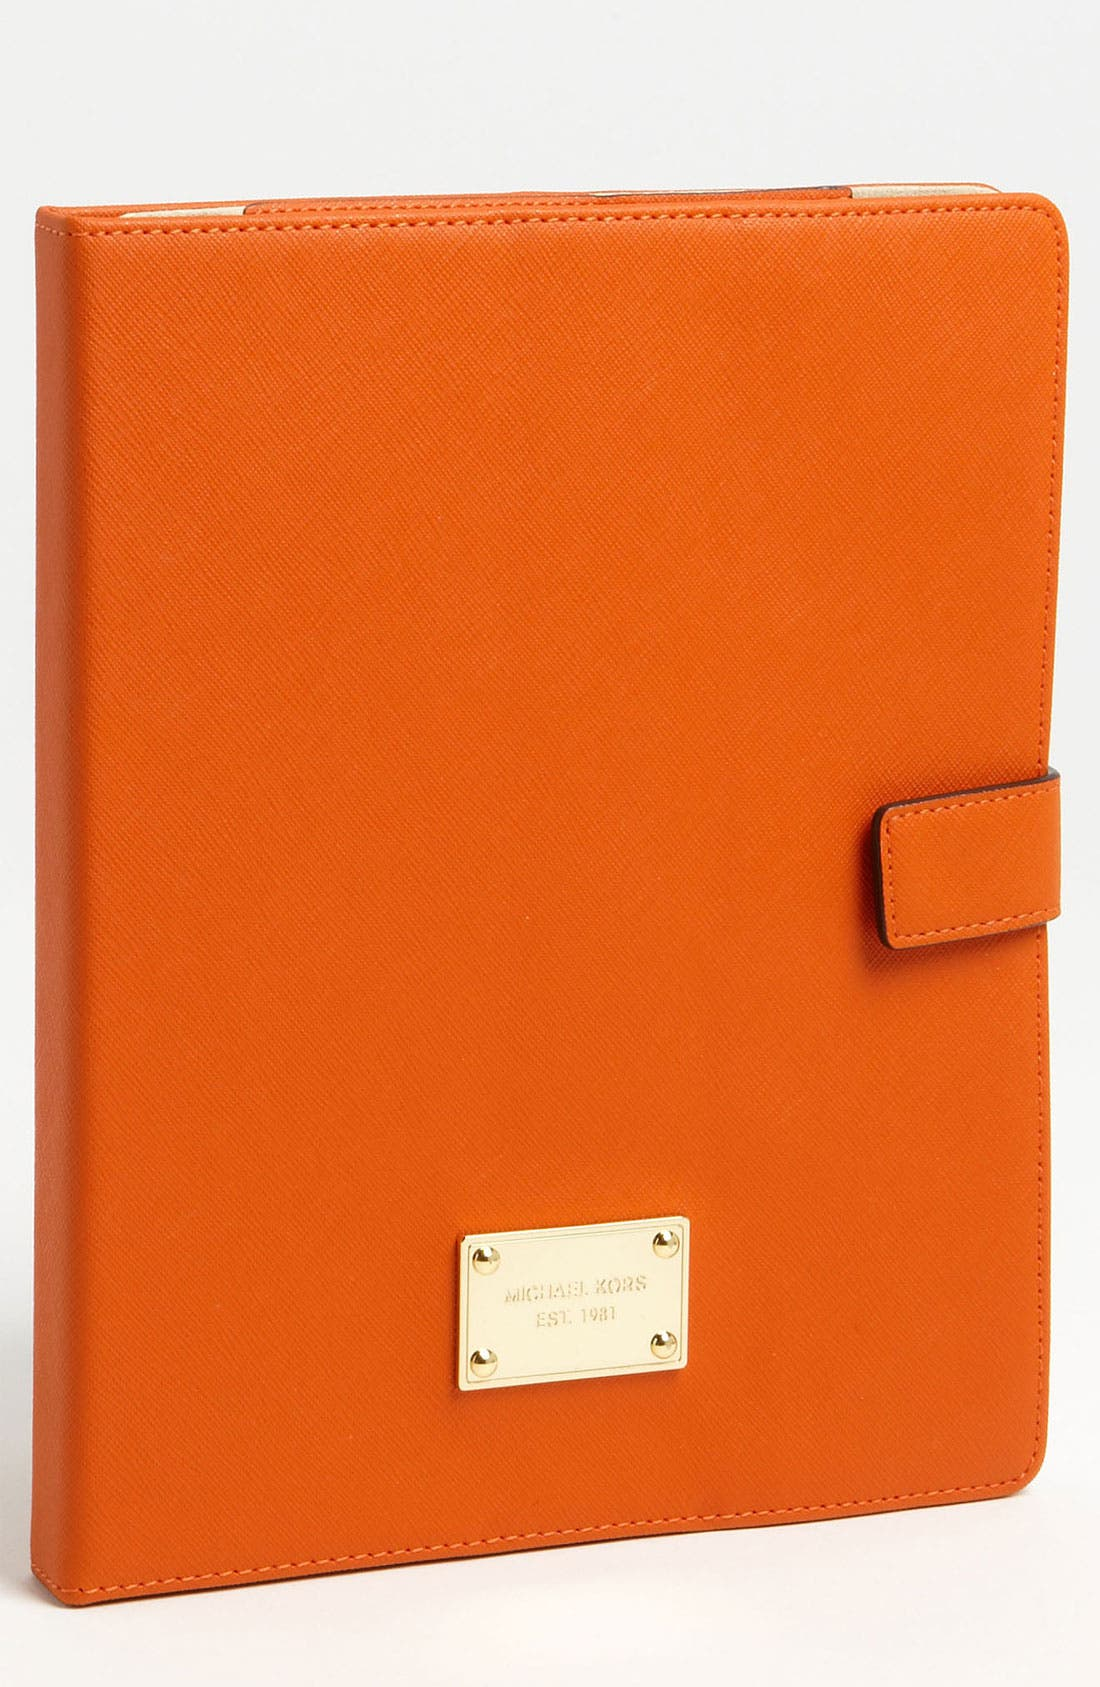 Alternate Image 1 Selected - MICHAEL Michael Kors Saffiano Leather iPad 2 & 3 Stand